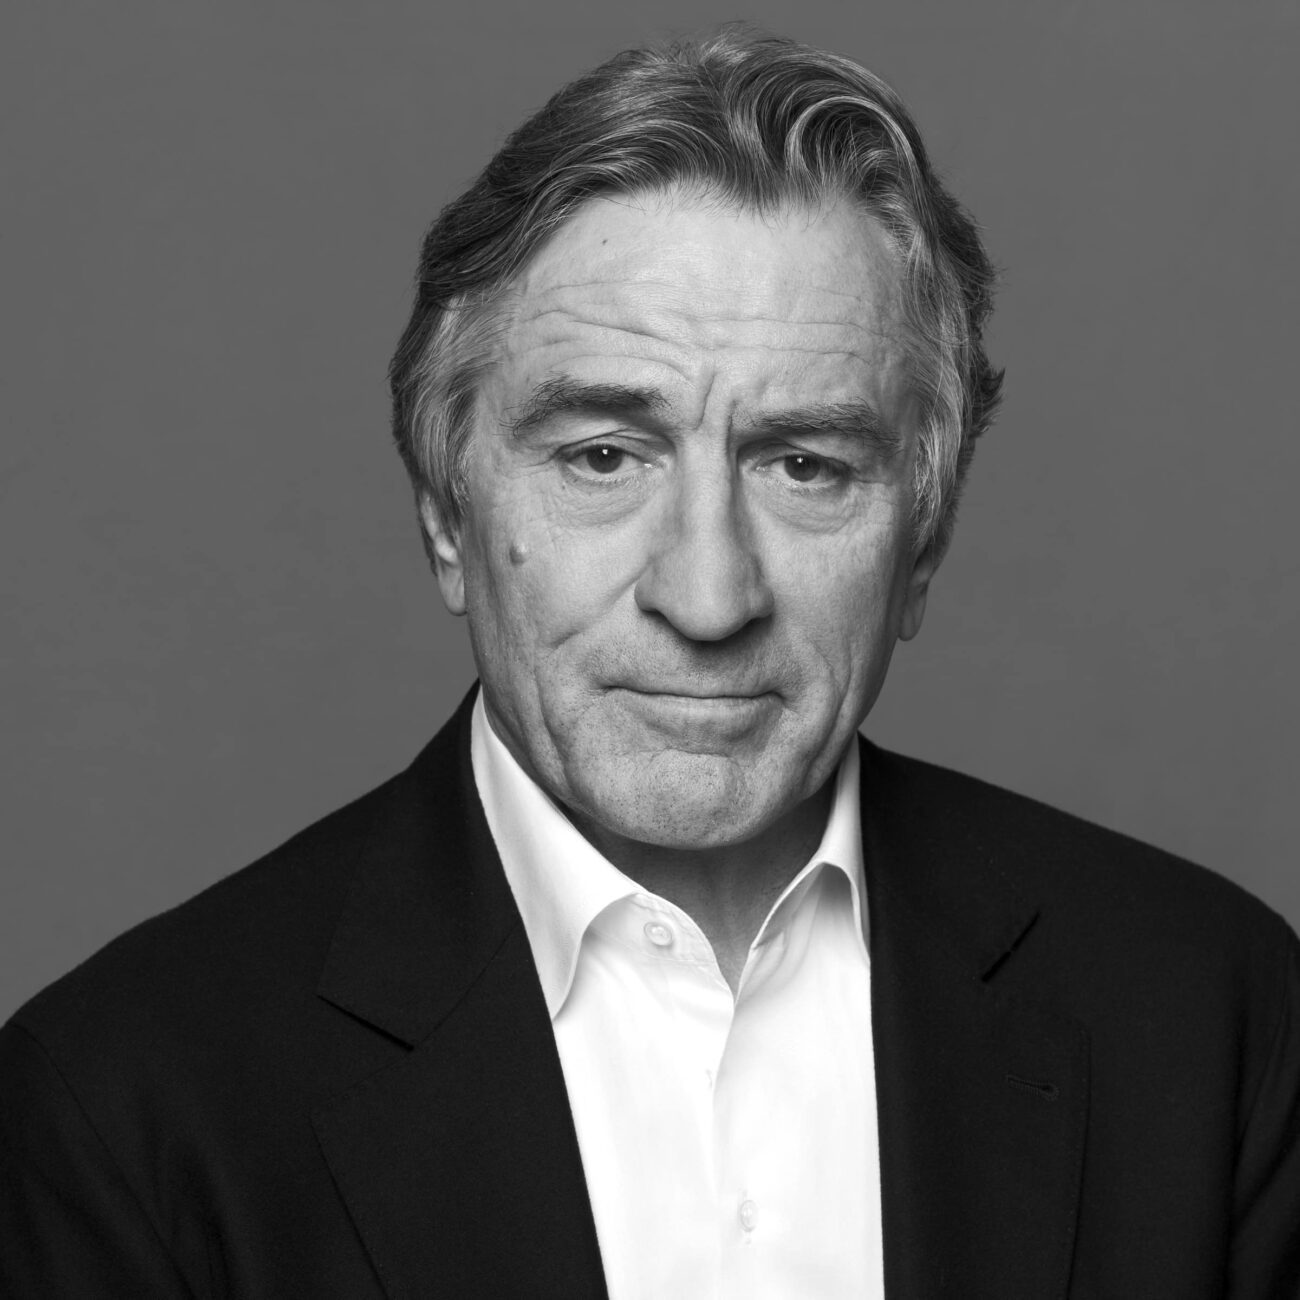 Happy birthday Robert De Niro! As the legendary actor celebrates his 78th birthday, let's take a look at how he has made (and spends) his massive net worth.